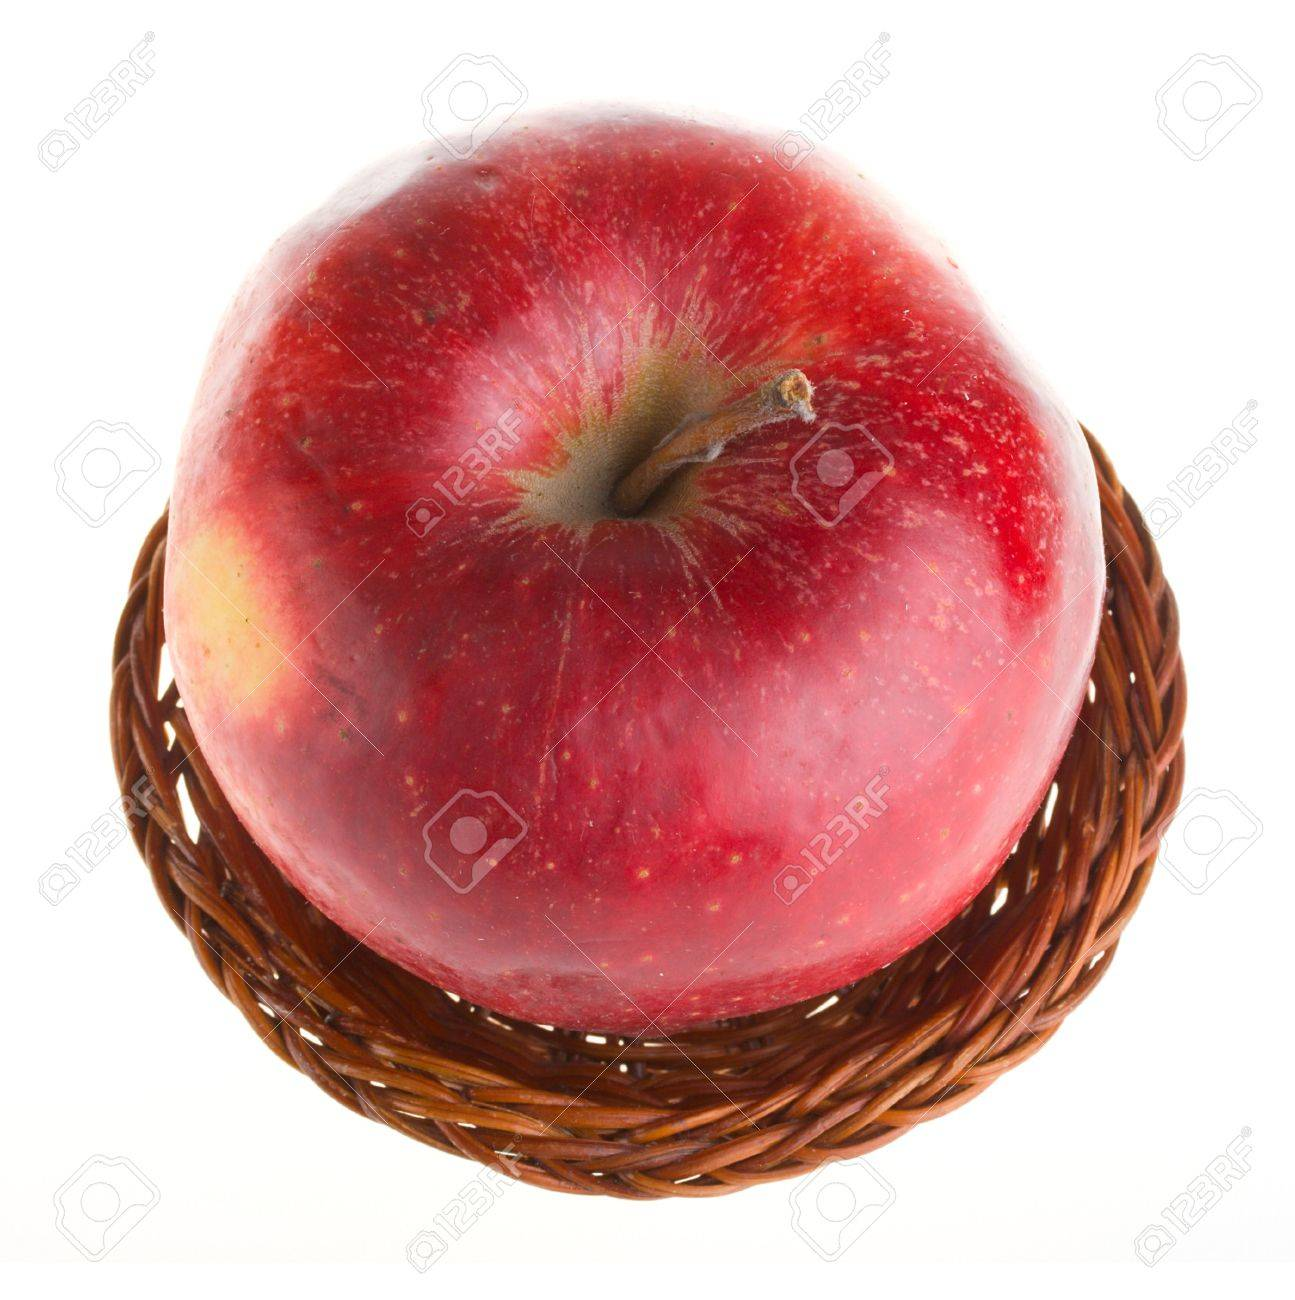 close-up red apple in basket, view from above, isolated on white Stock Photo - 3953503